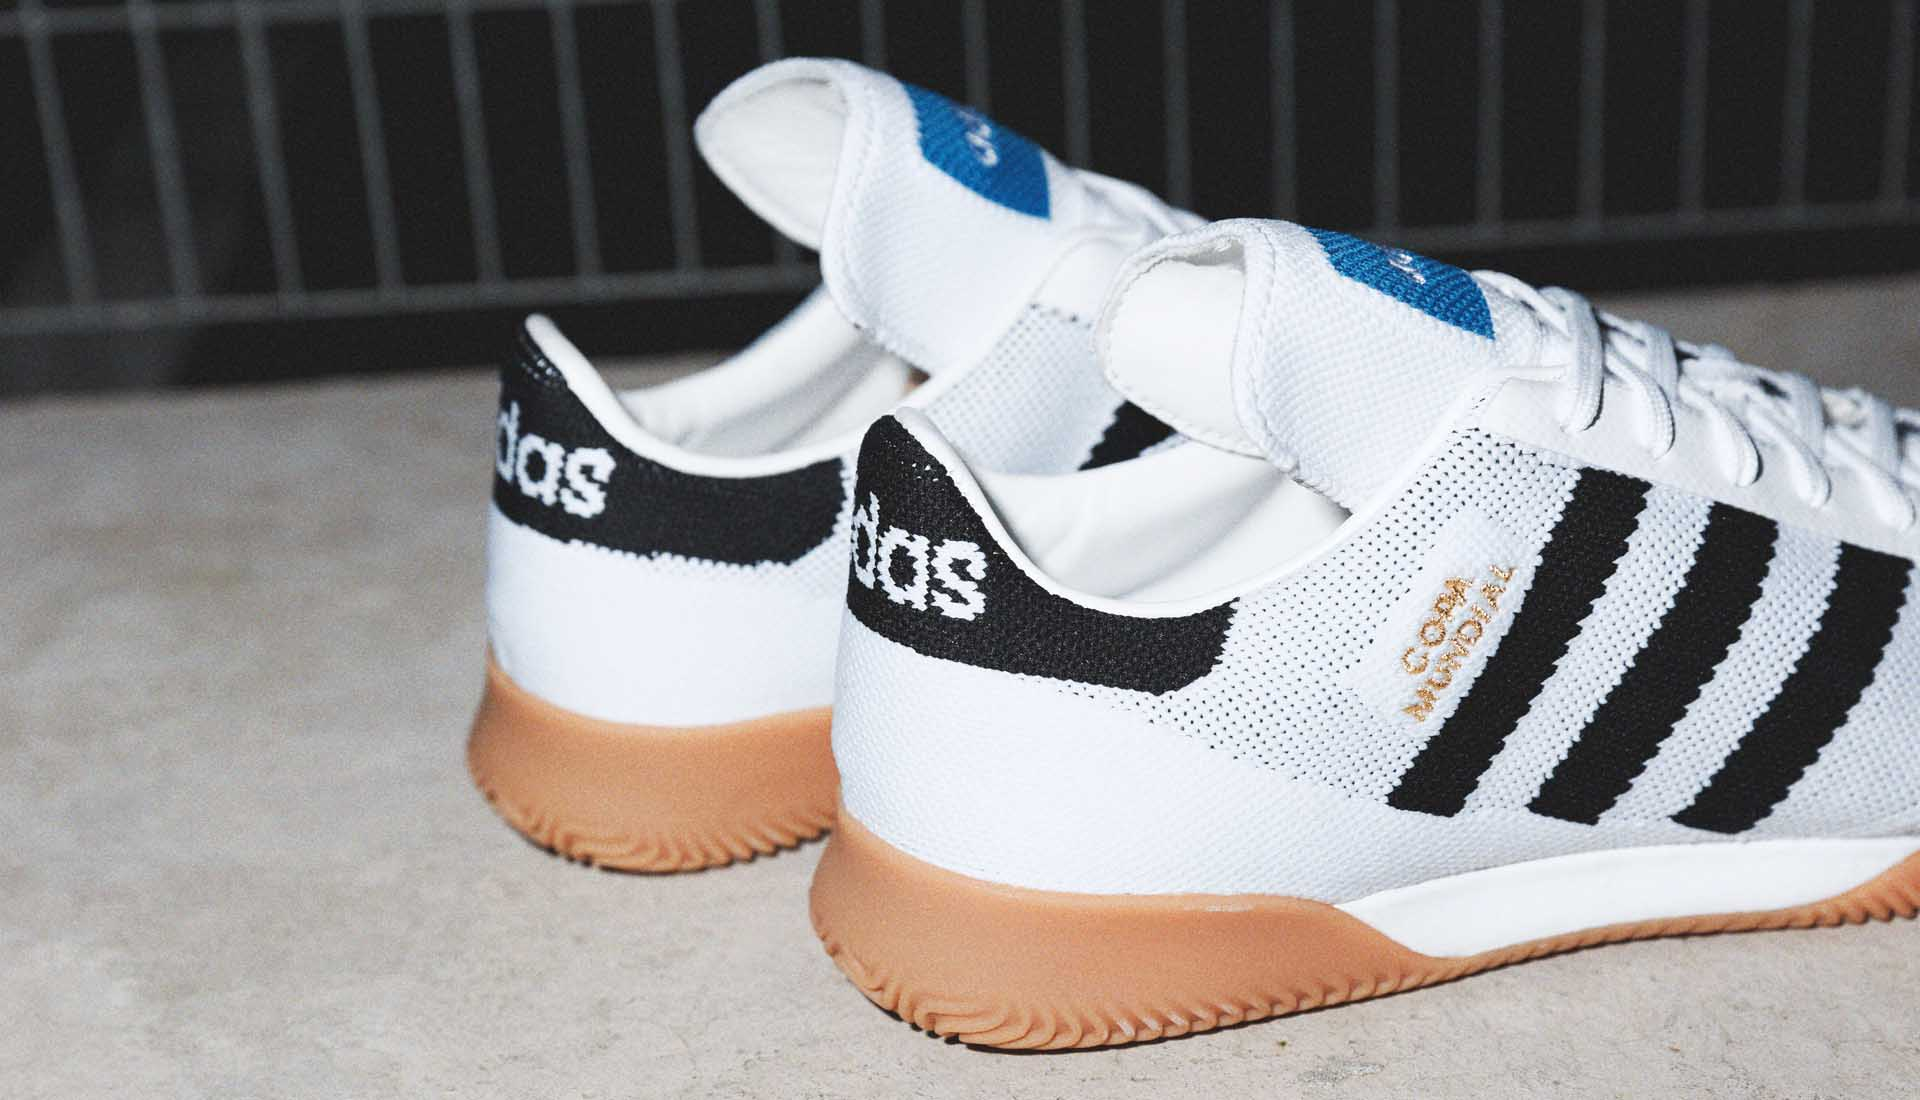 8bf23a8f4531 adidas Drop Two Limited Edition COPA 70Y Sneakers - SoccerBible